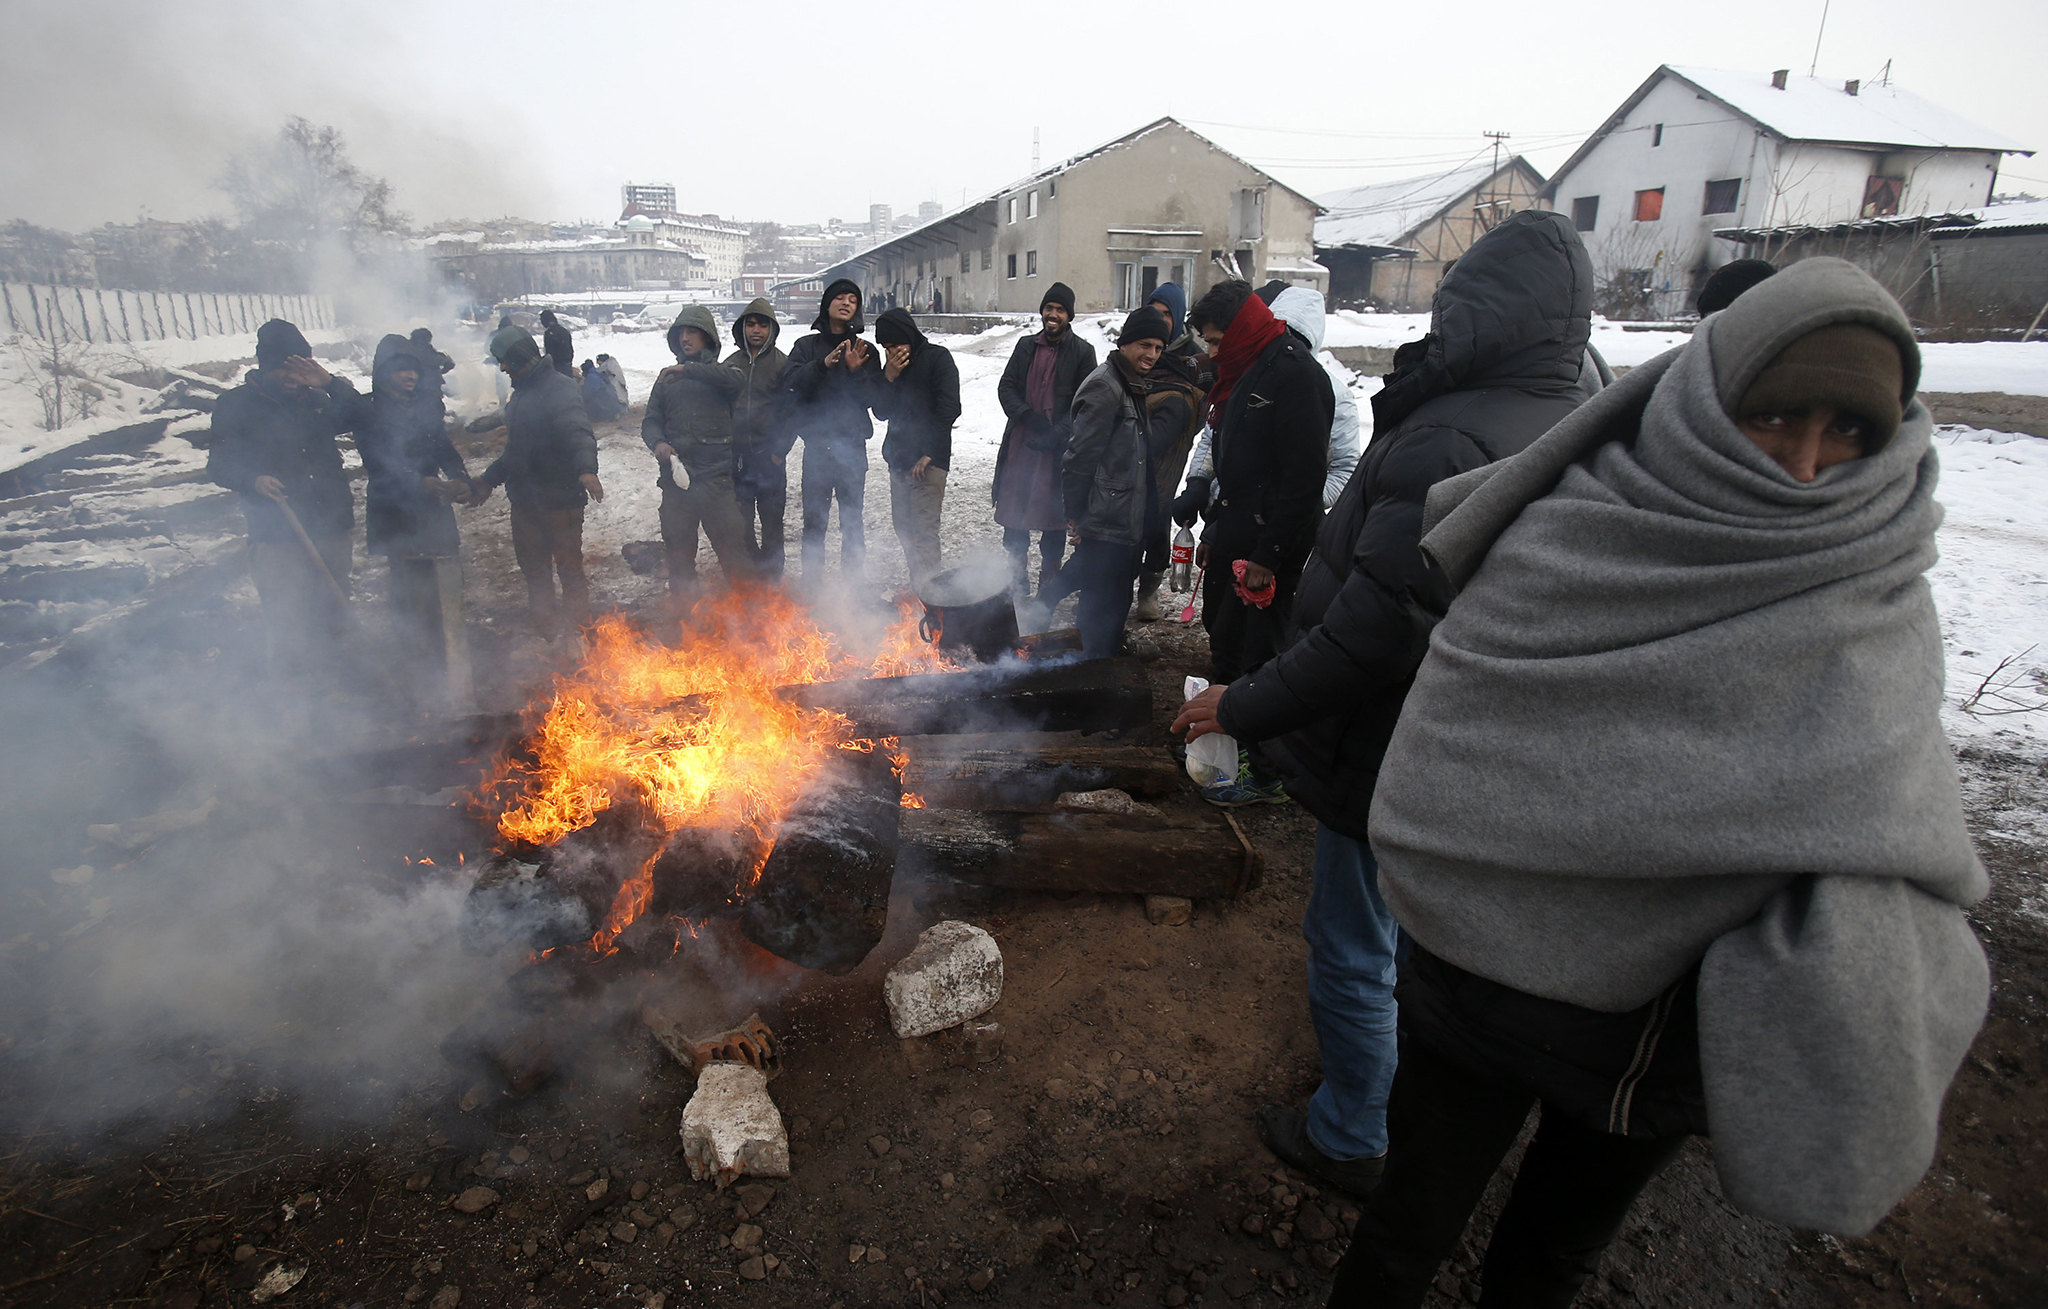 Migrants warm themselves by the fire in front of an abandoned warehouse in Belgrade, Serbia, Tuesday, Jan. 10, 2017. Hundreds of migrants are sleeping rough in parks and make-shift shelters in the Serbian capital in freezing temperatures waiting for a chance to move forward toward the European Union. (AP Photo/Darko Vojinovic)